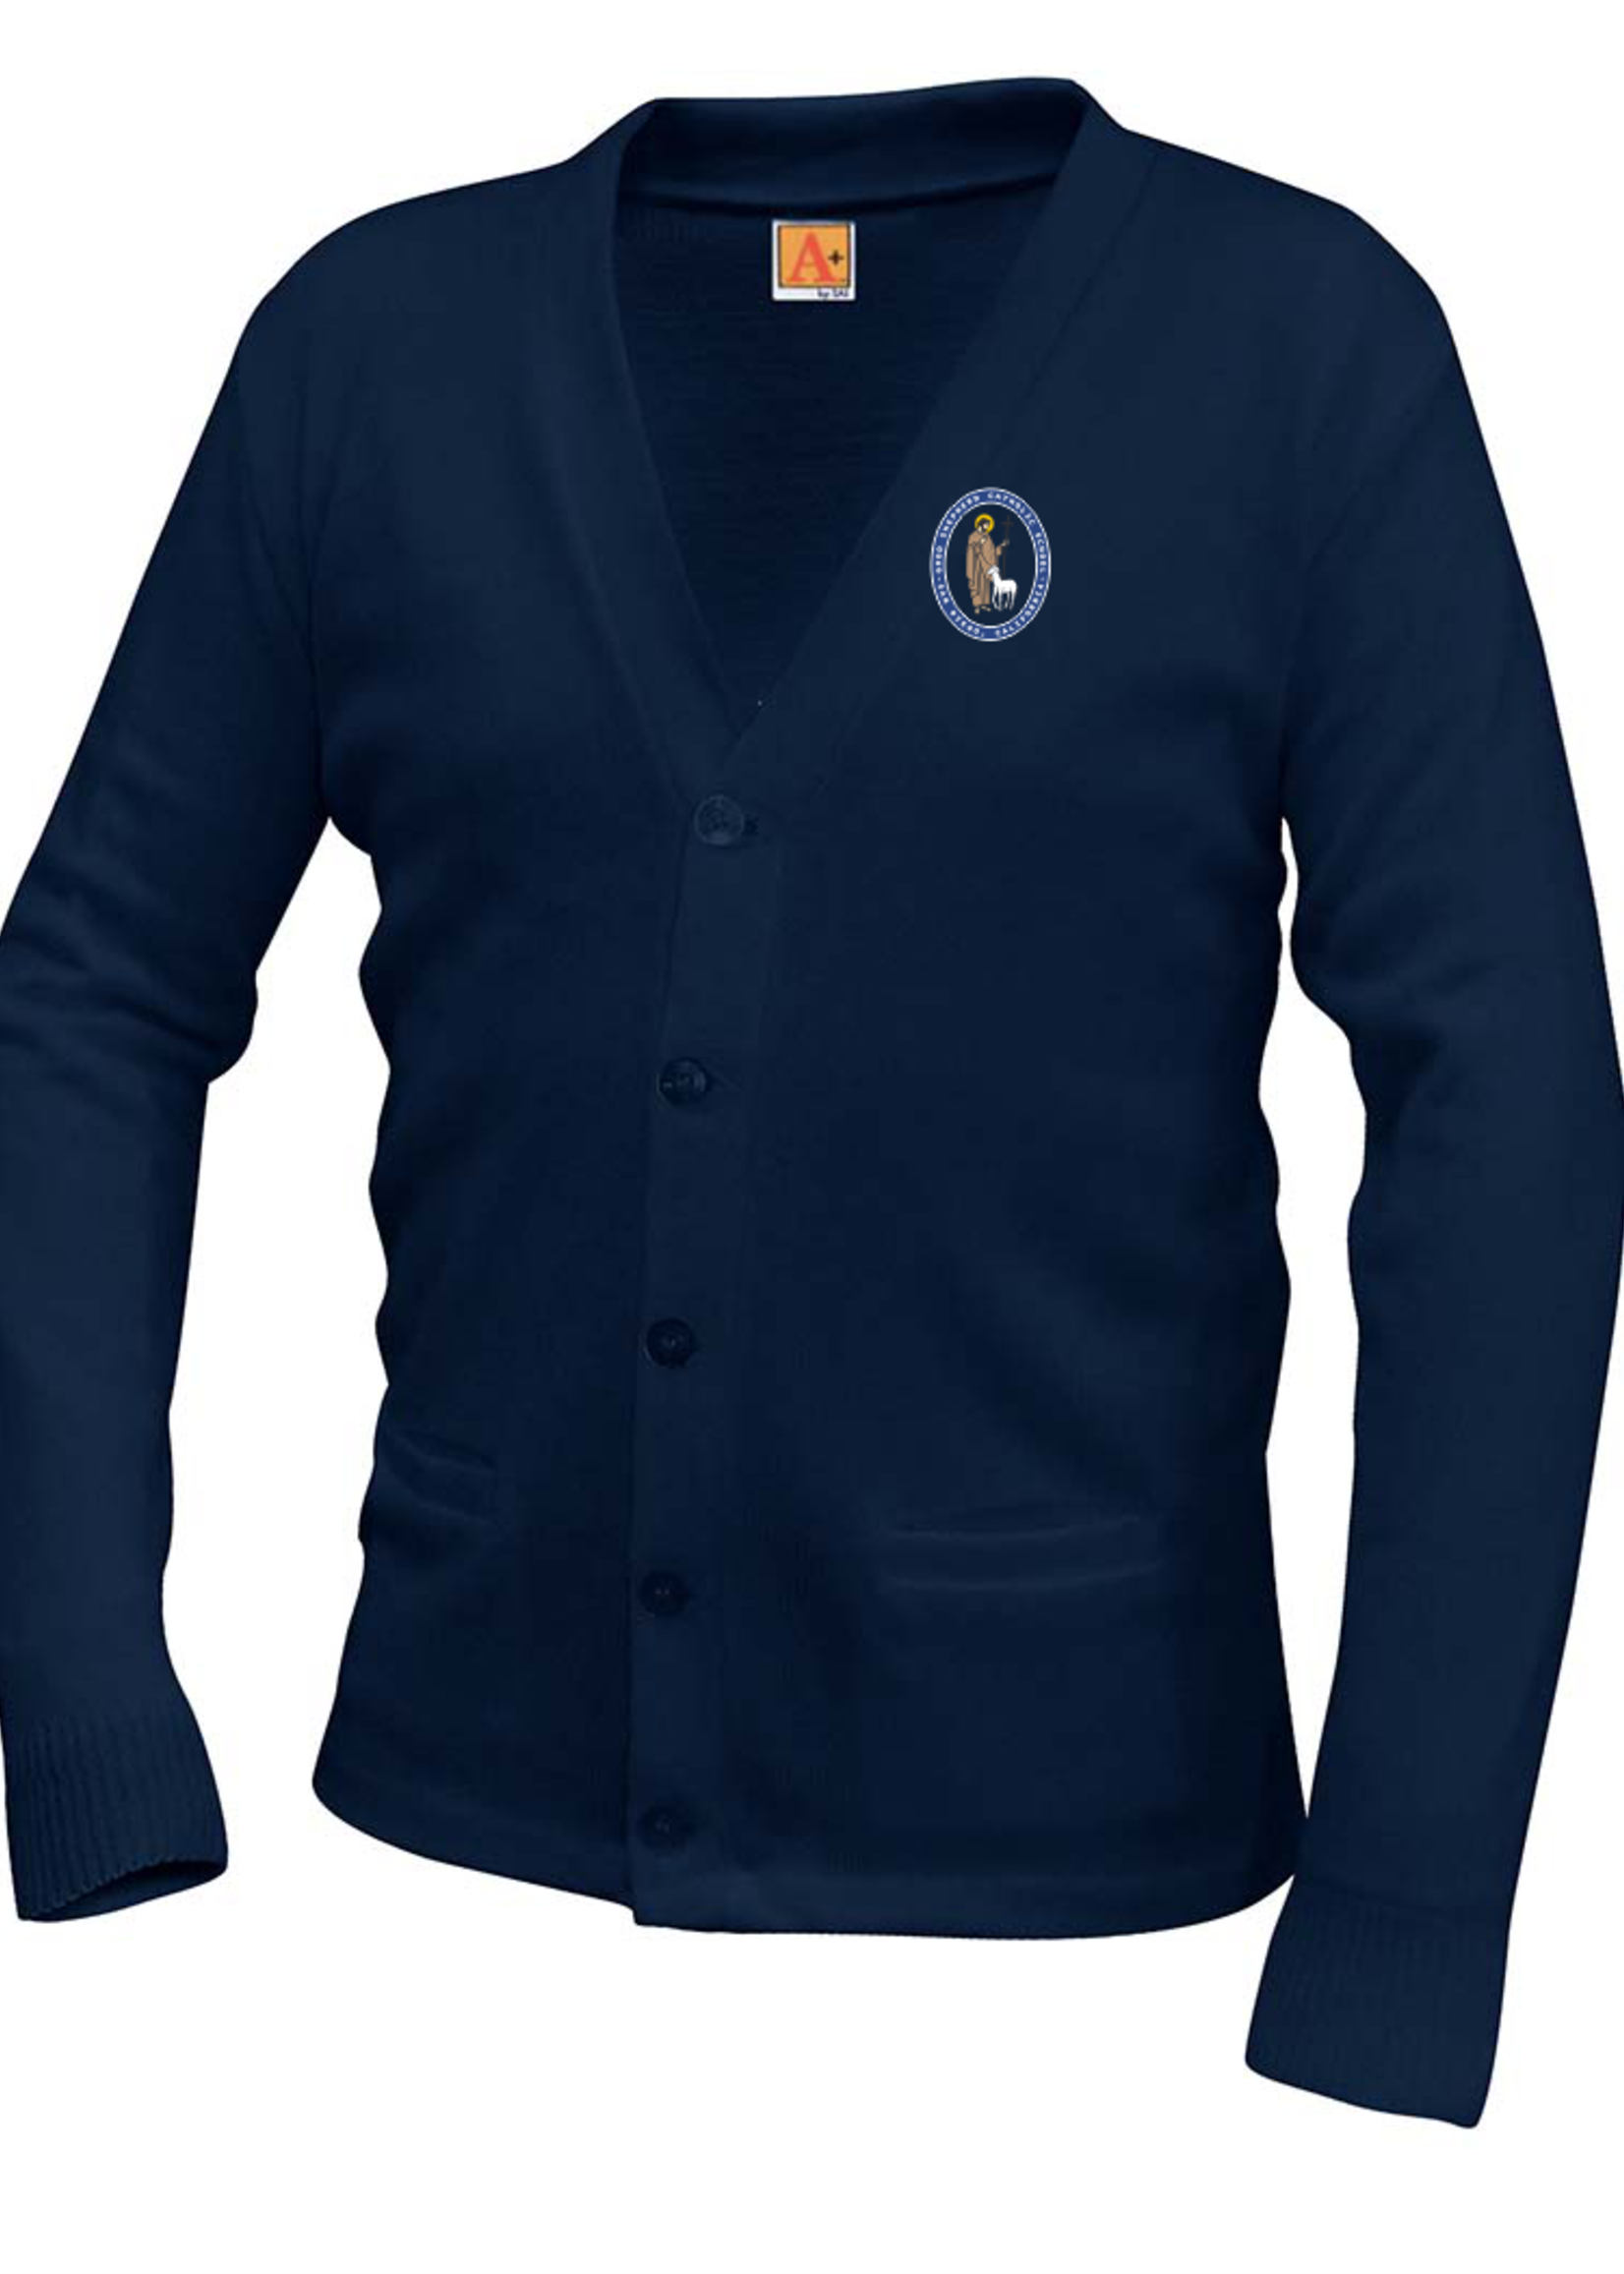 TUS GSCS Navy V-neck cardigan sweater with pockets